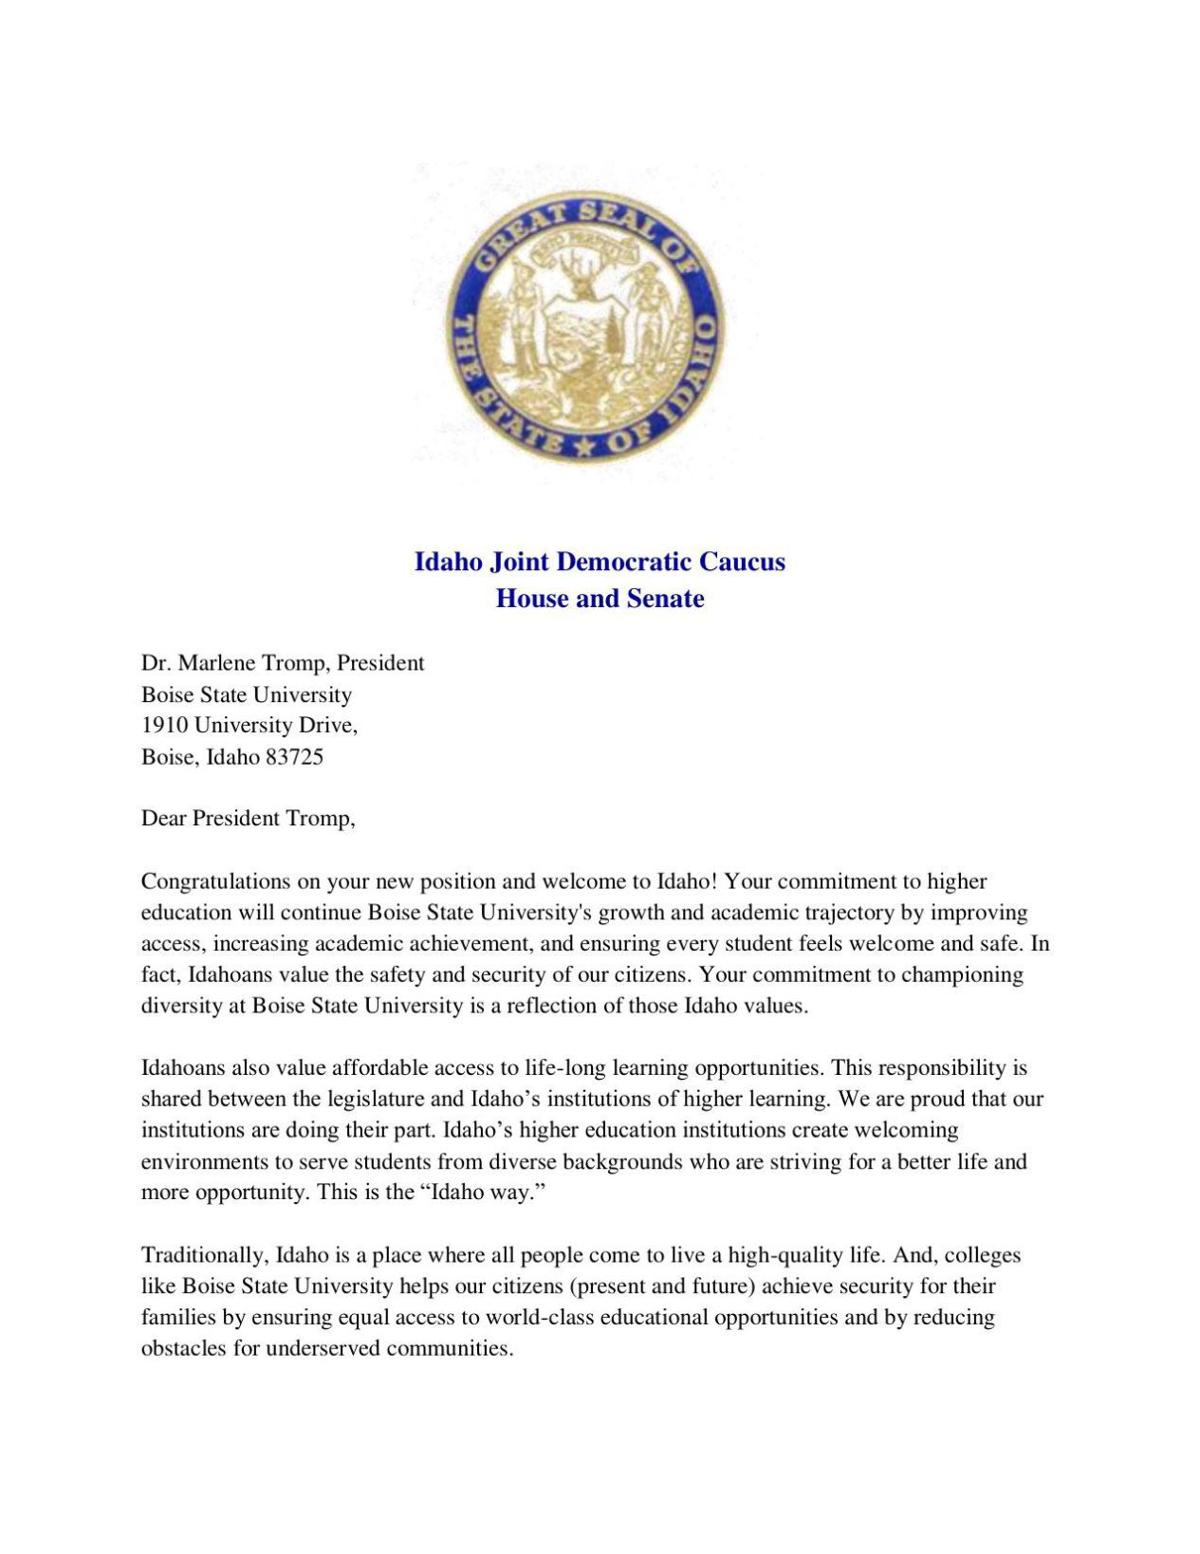 Dems Letter to Tromp